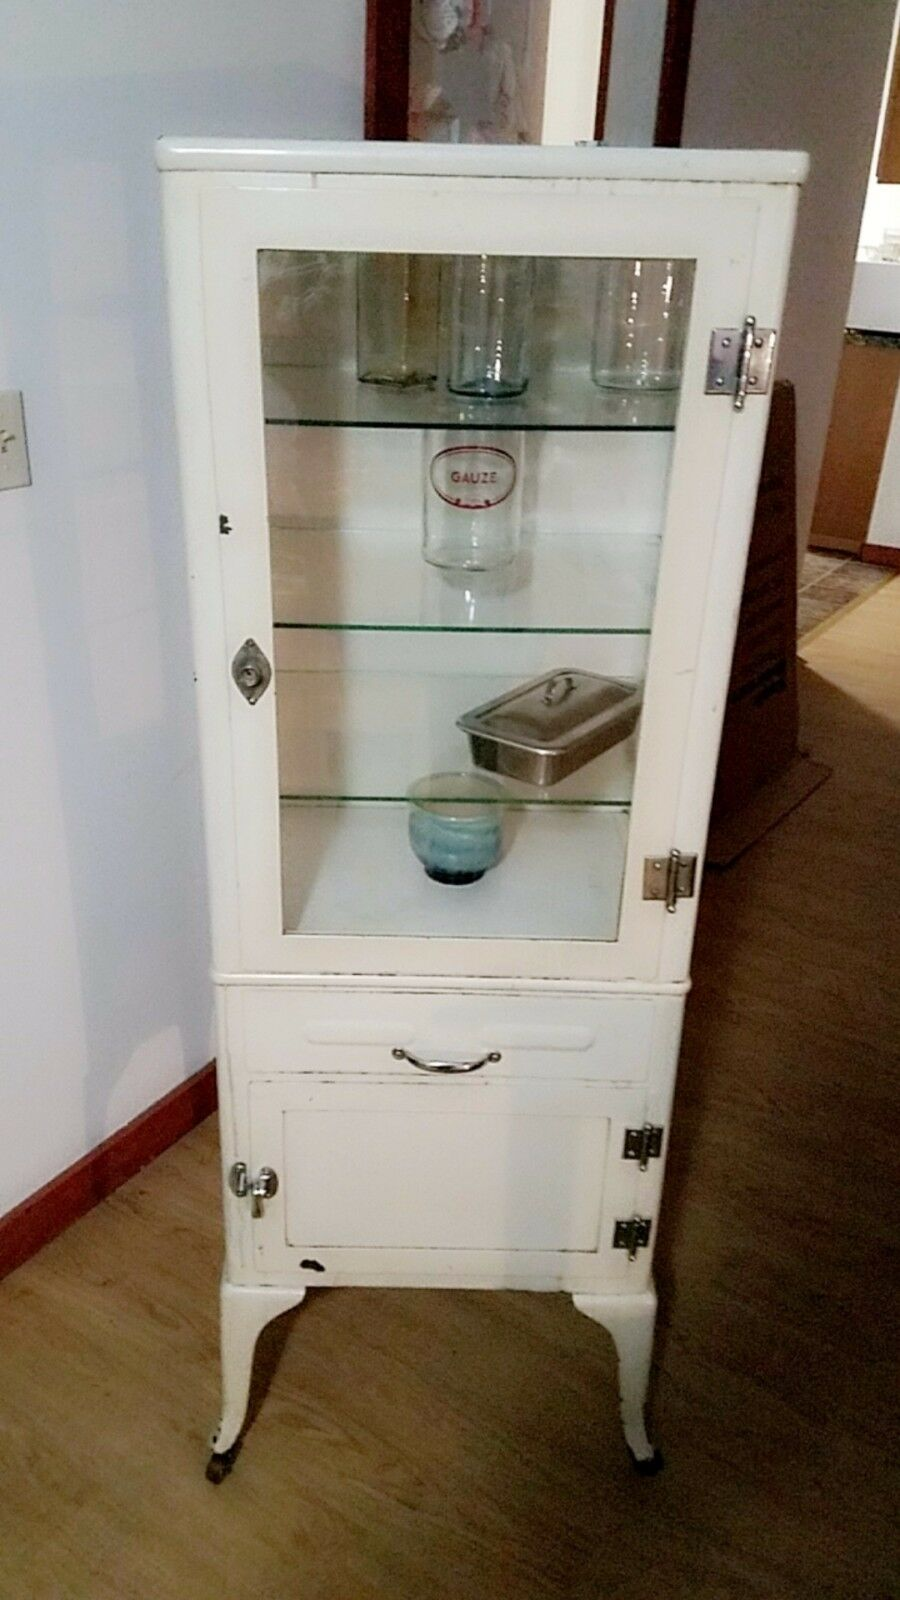 Off white antique medicine cabinet 3 glass shelves farley good condition 1  of 2Only 1 available ... - OFF WHITE ANTIQUE Medicine Cabinet 3 Glass Shelves Farley Good